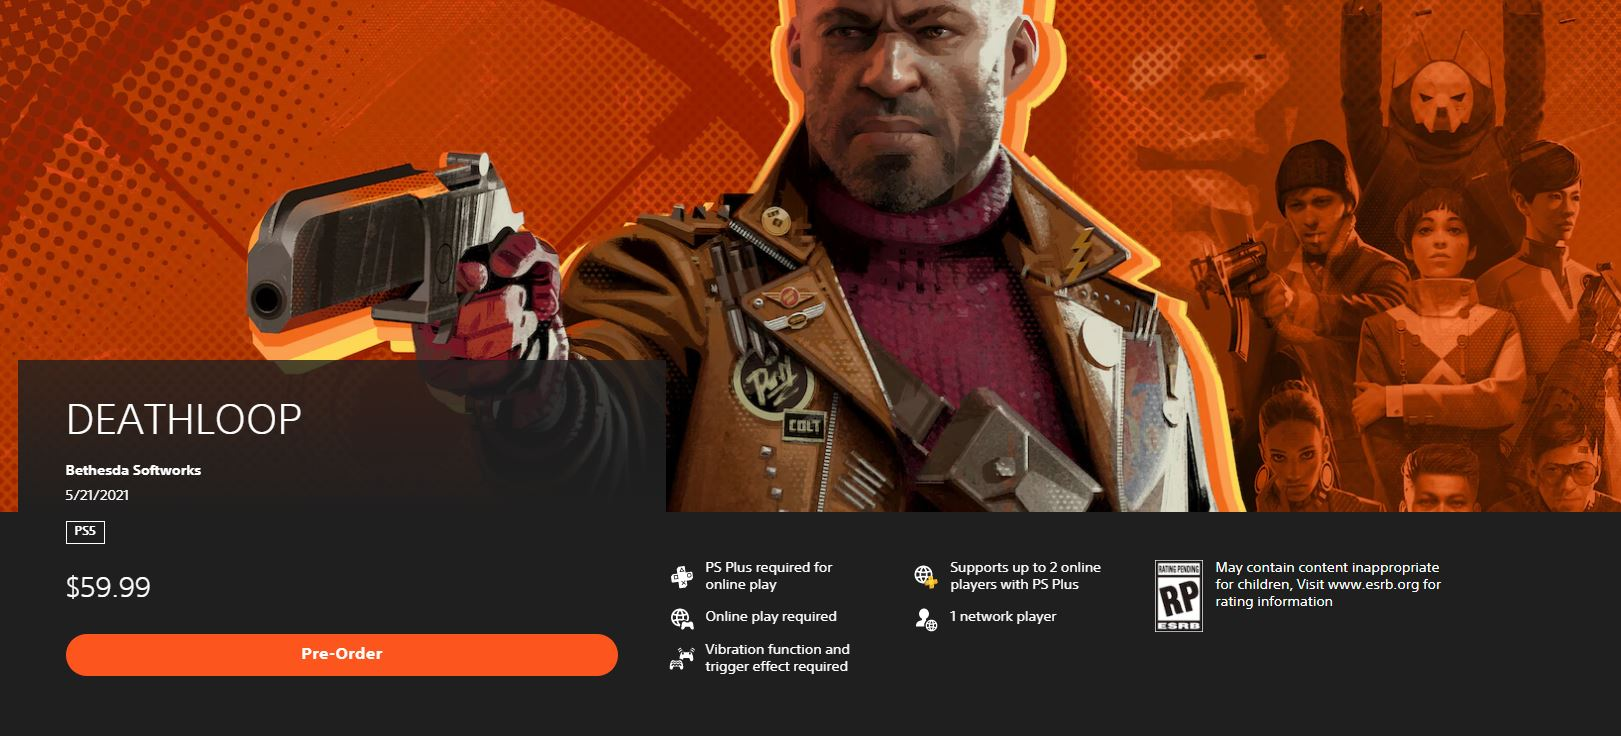 rumor-deathloop-requires-an-internet-connection-to-play-on-ps5